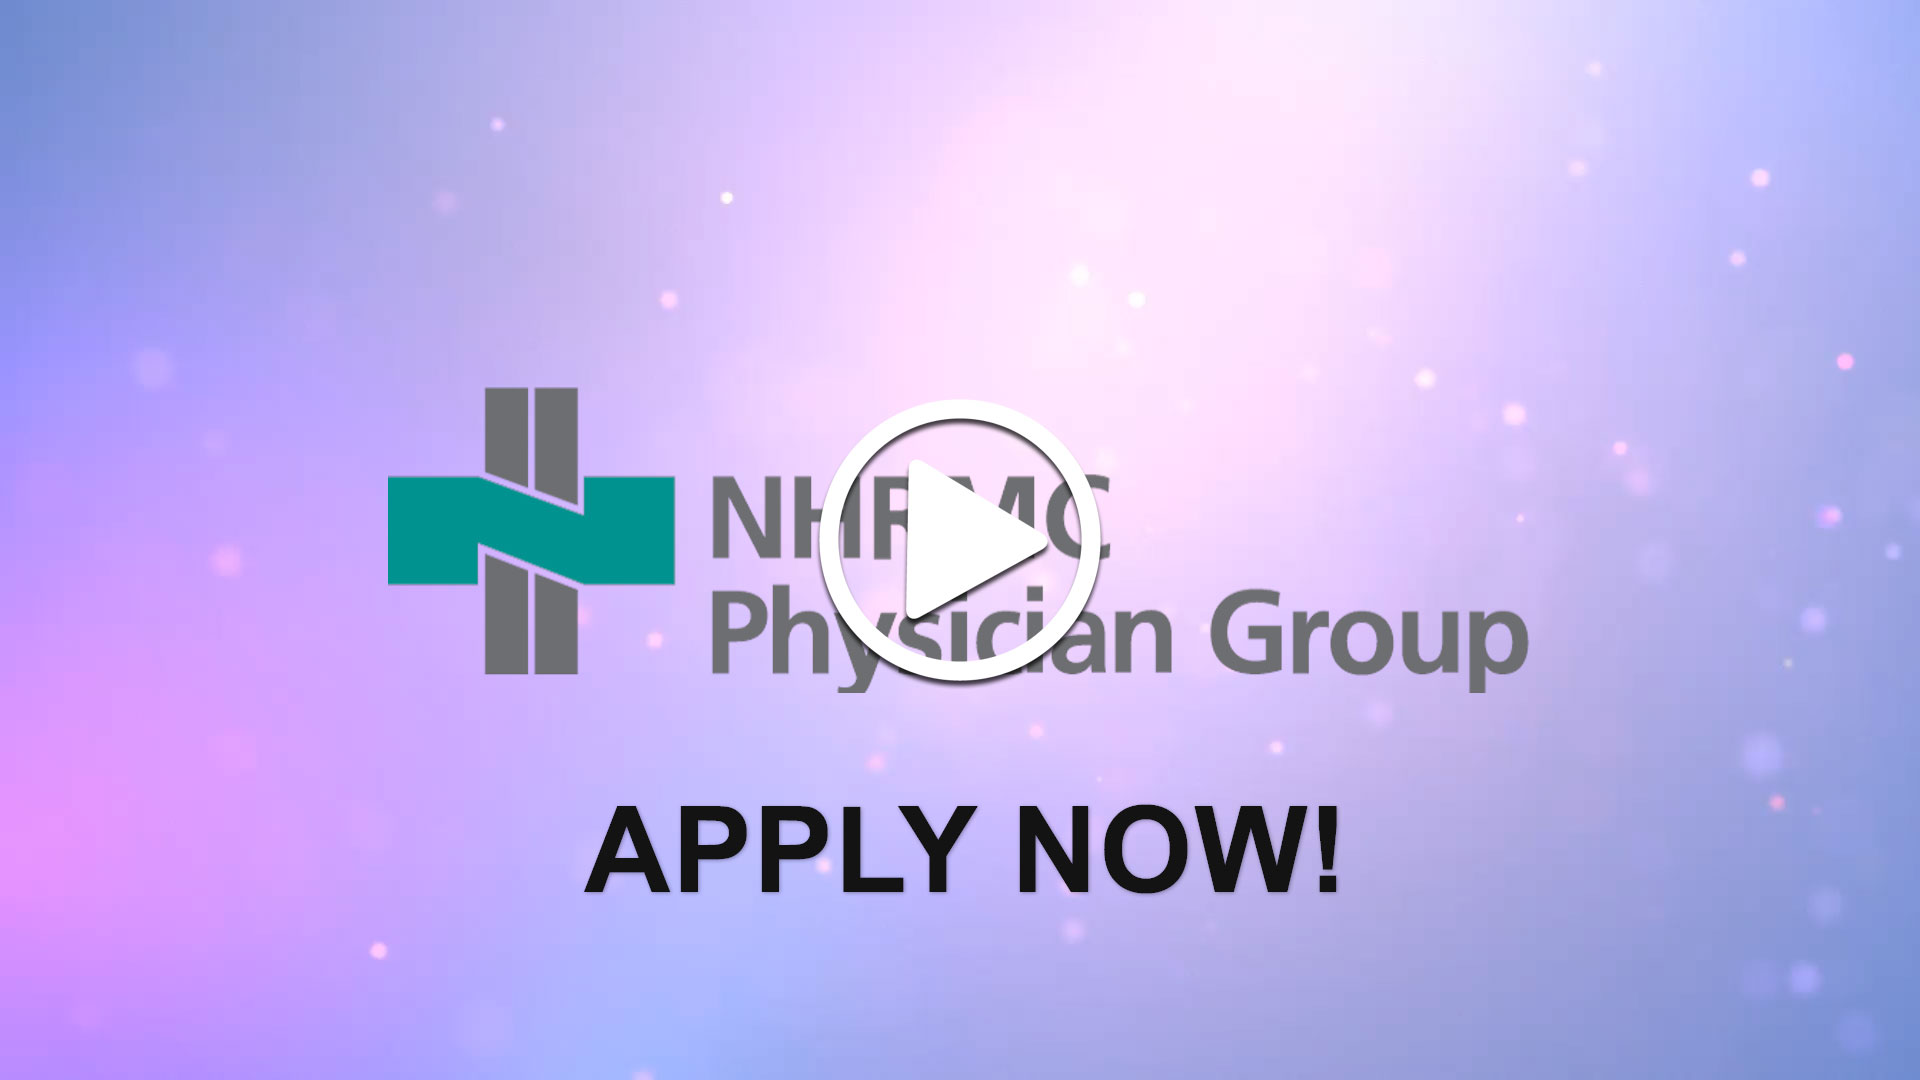 Watch our careers video for available job opening Non-Invasive Cardiologist for Coastal North Carolina in Wilmington, NC.  USA